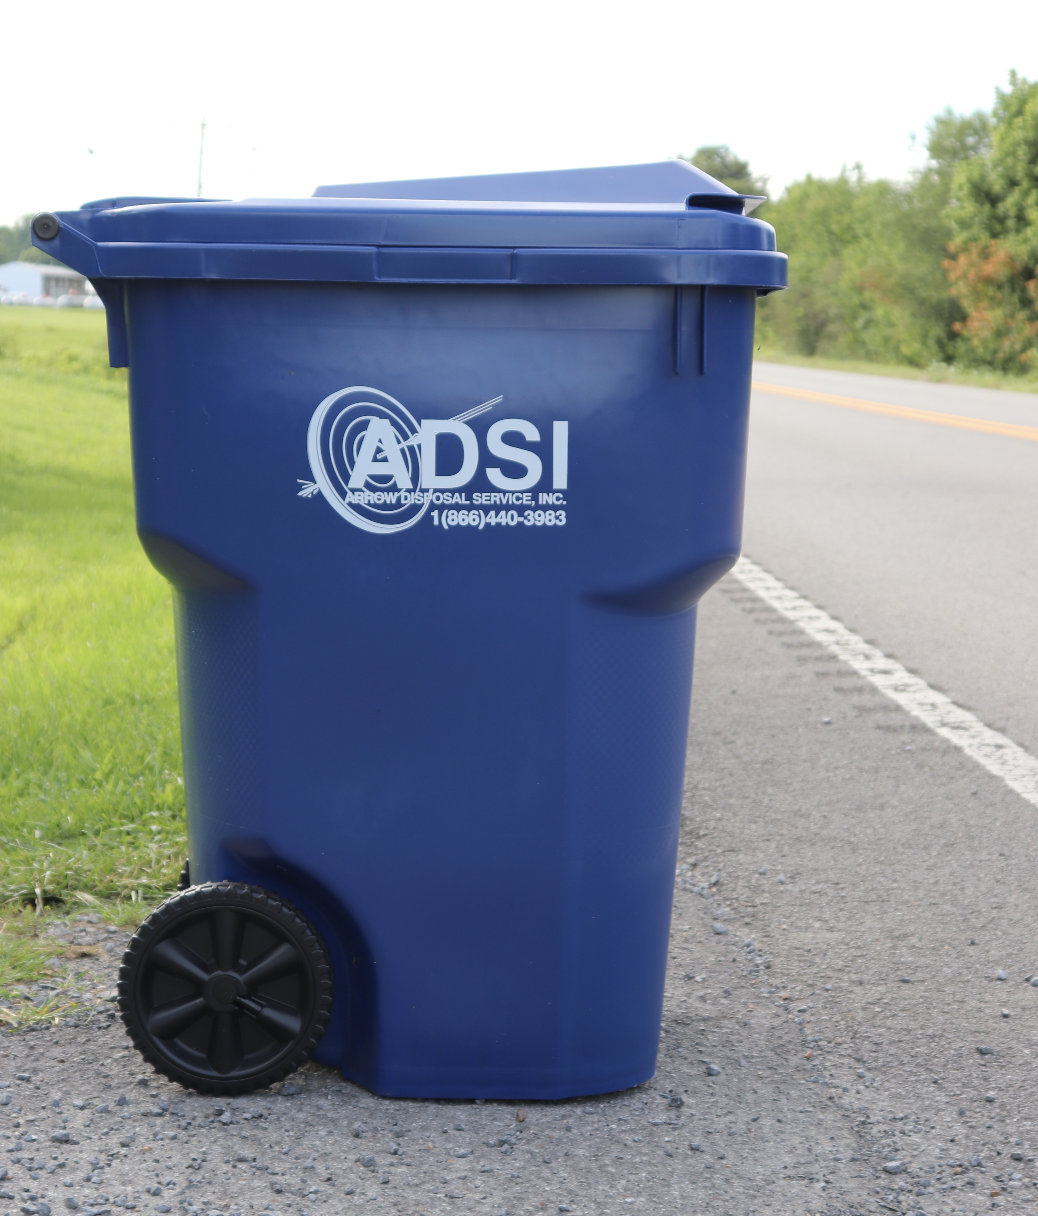 County sees change in waste disposal